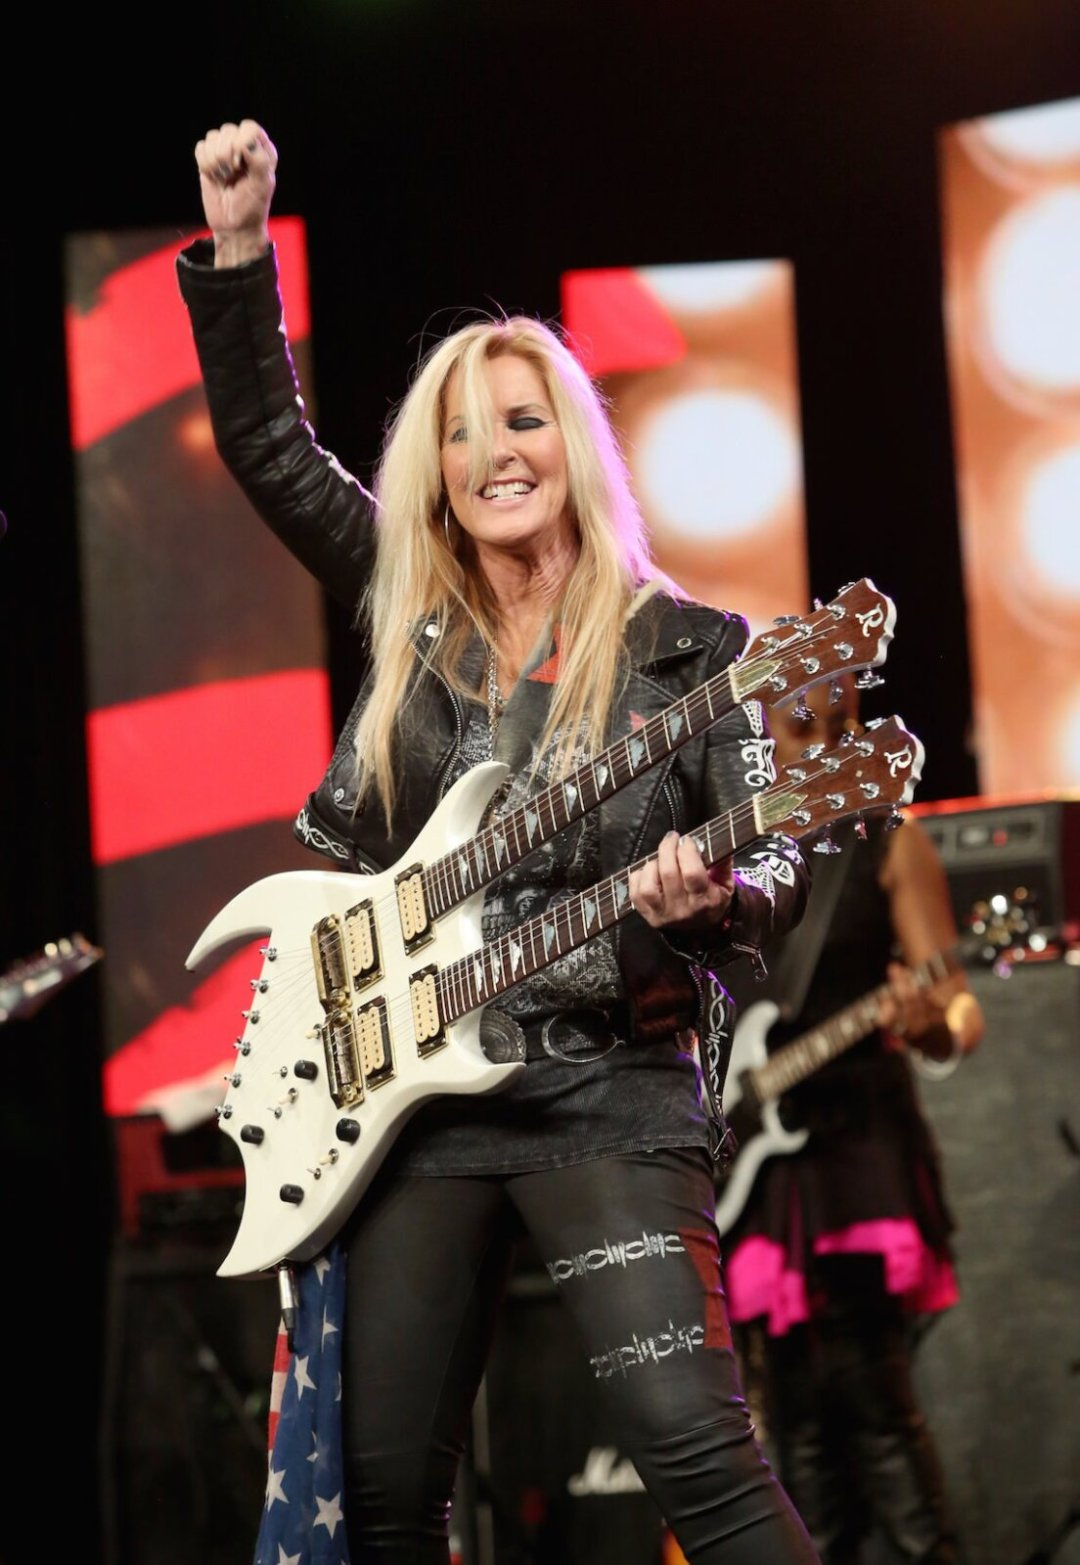 Guitarist Lita Ford performs on stage at the She Rocks Awards during the 2017 NAMM Show at the Anaheim Convention Center on January 20, 2017 in Anaheim, California. (Photo by Jesse Grant/Getty Images for NAMM)